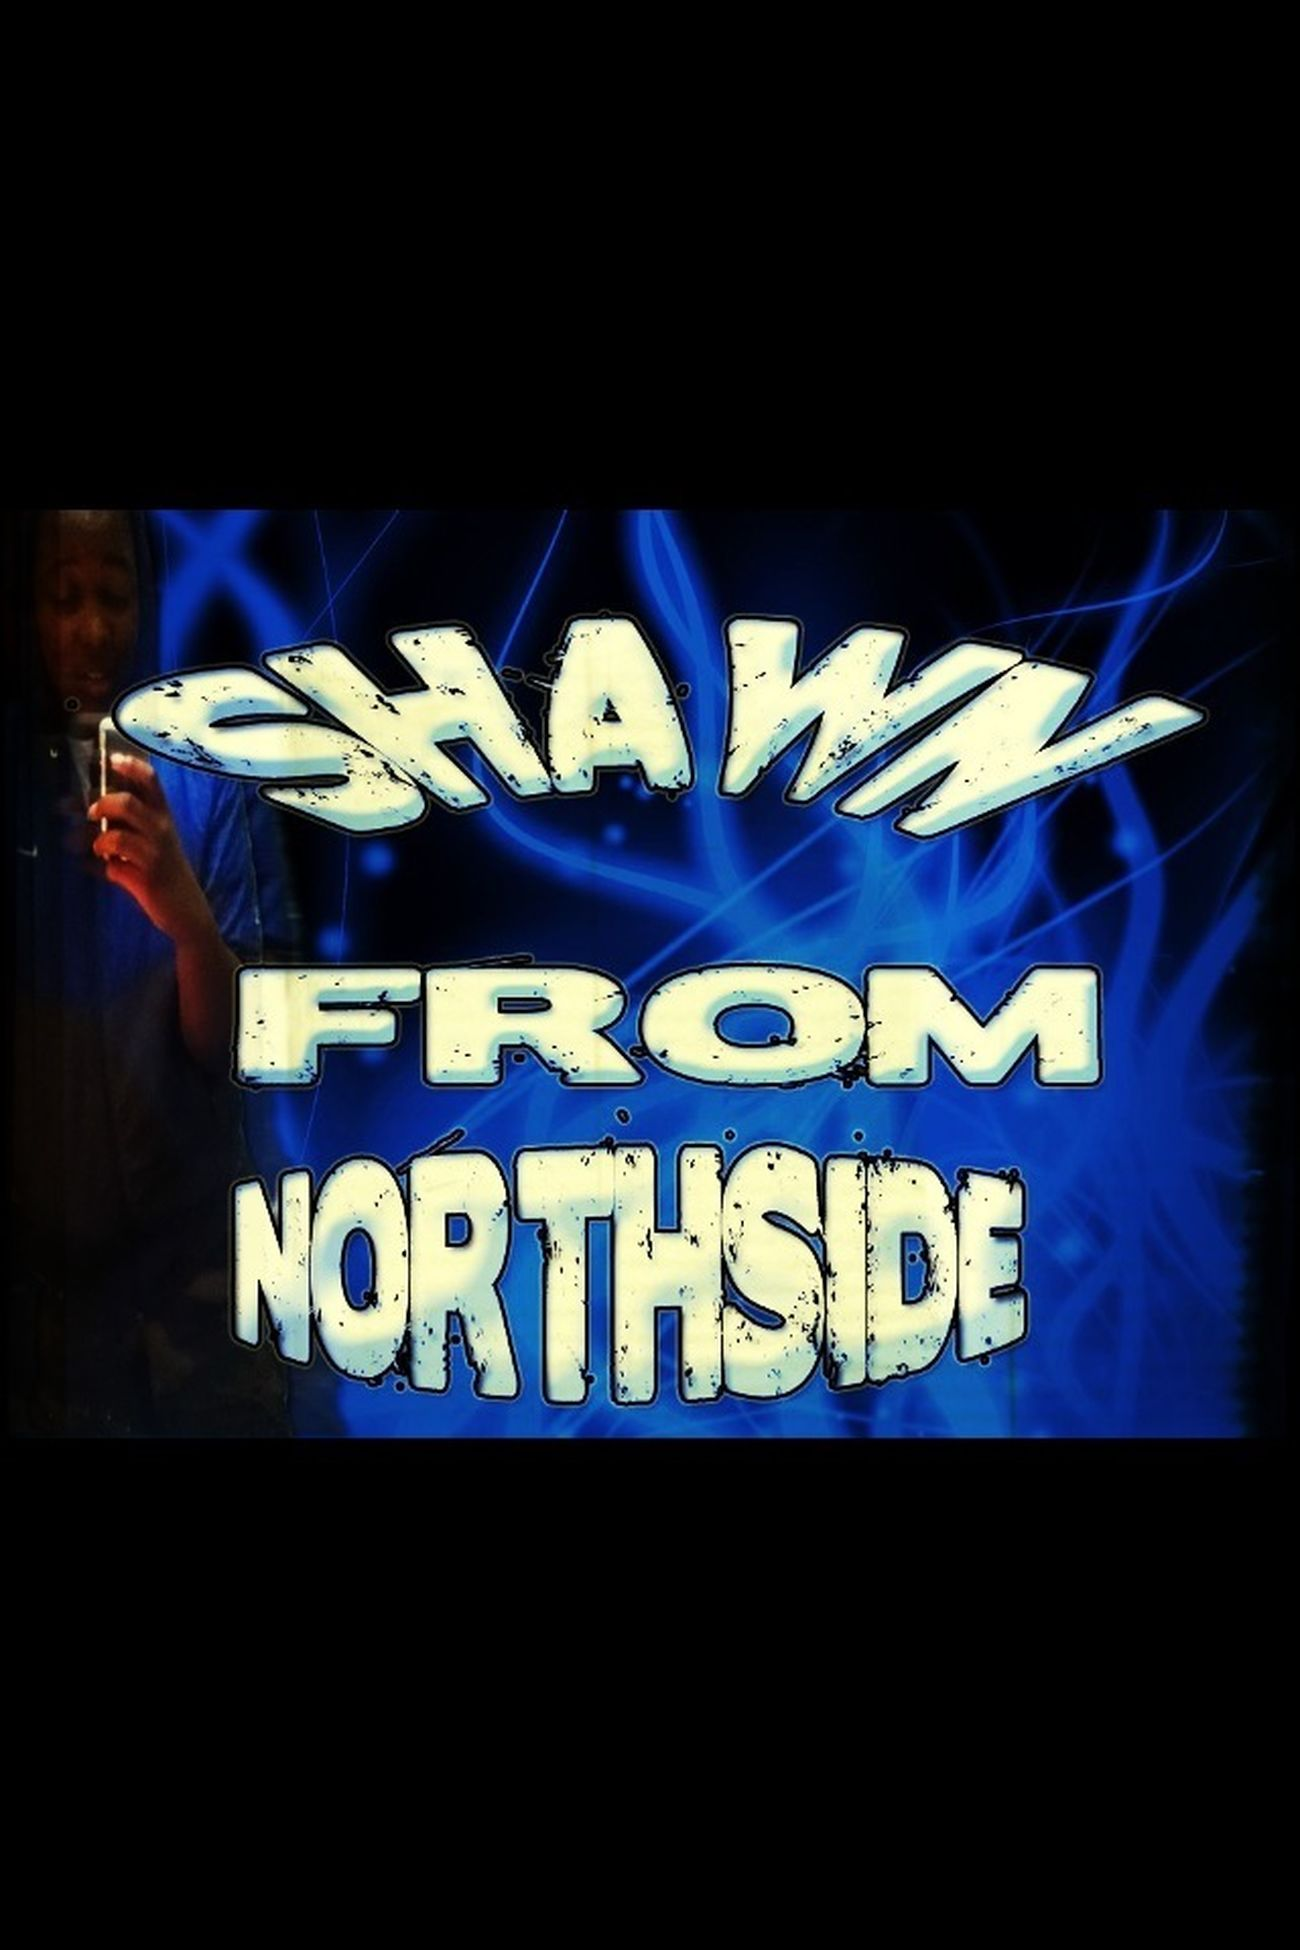 IM FRM NORTH SIDE !!